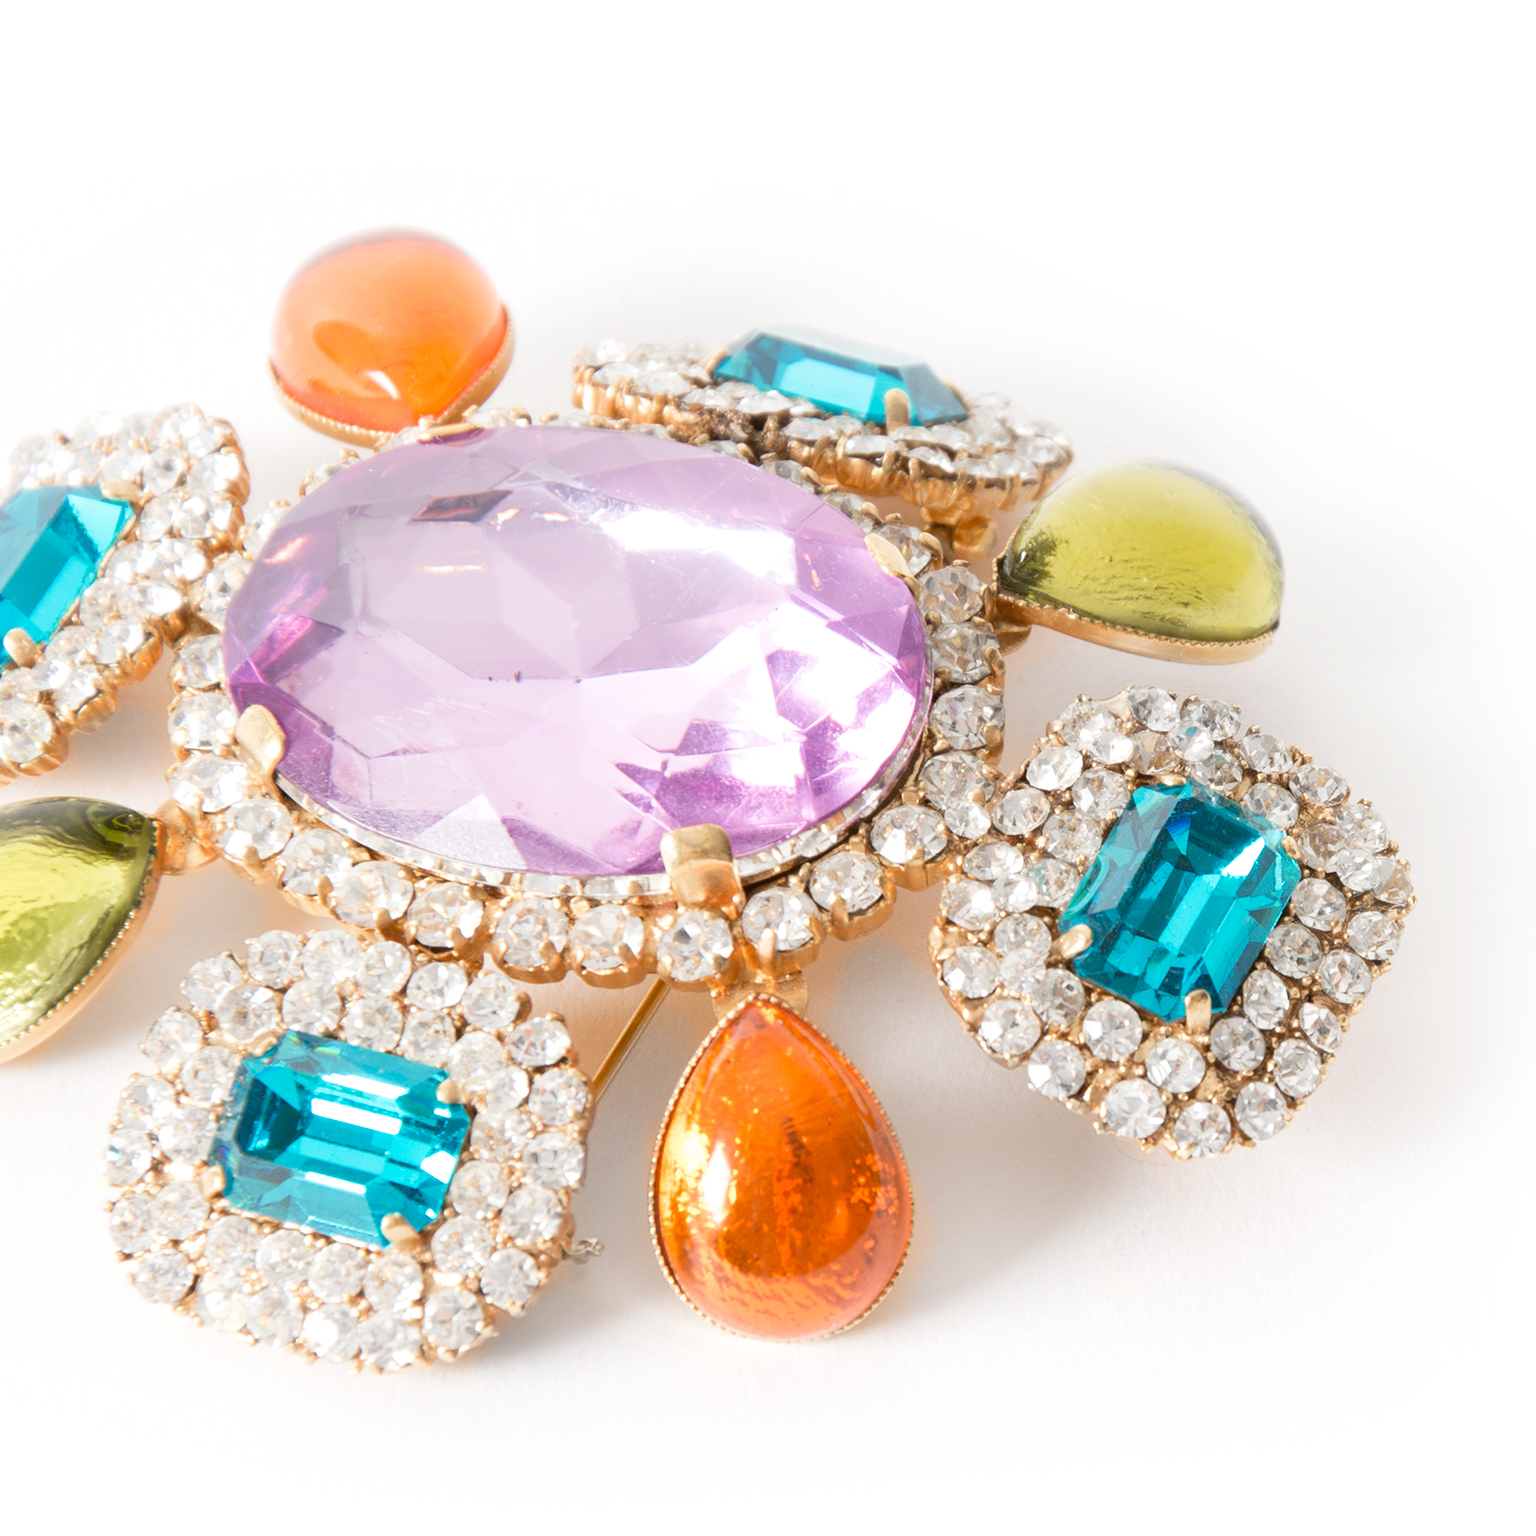 acheter en ligne seconde main Chanel rainstone multicolor brooch best price webshop labellov